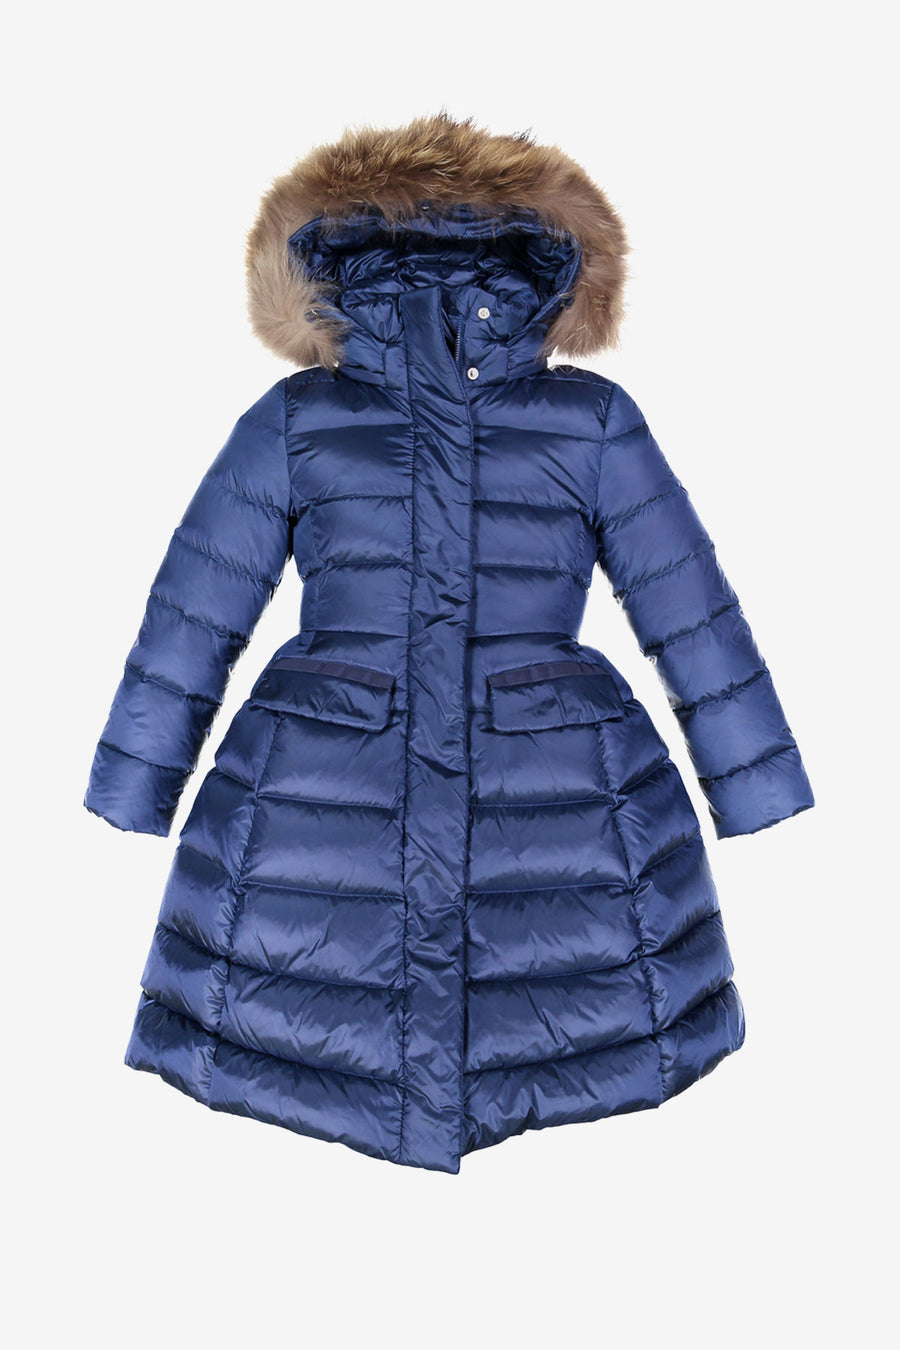 ADD Down Satin Hooded Down Coat - Cobalt